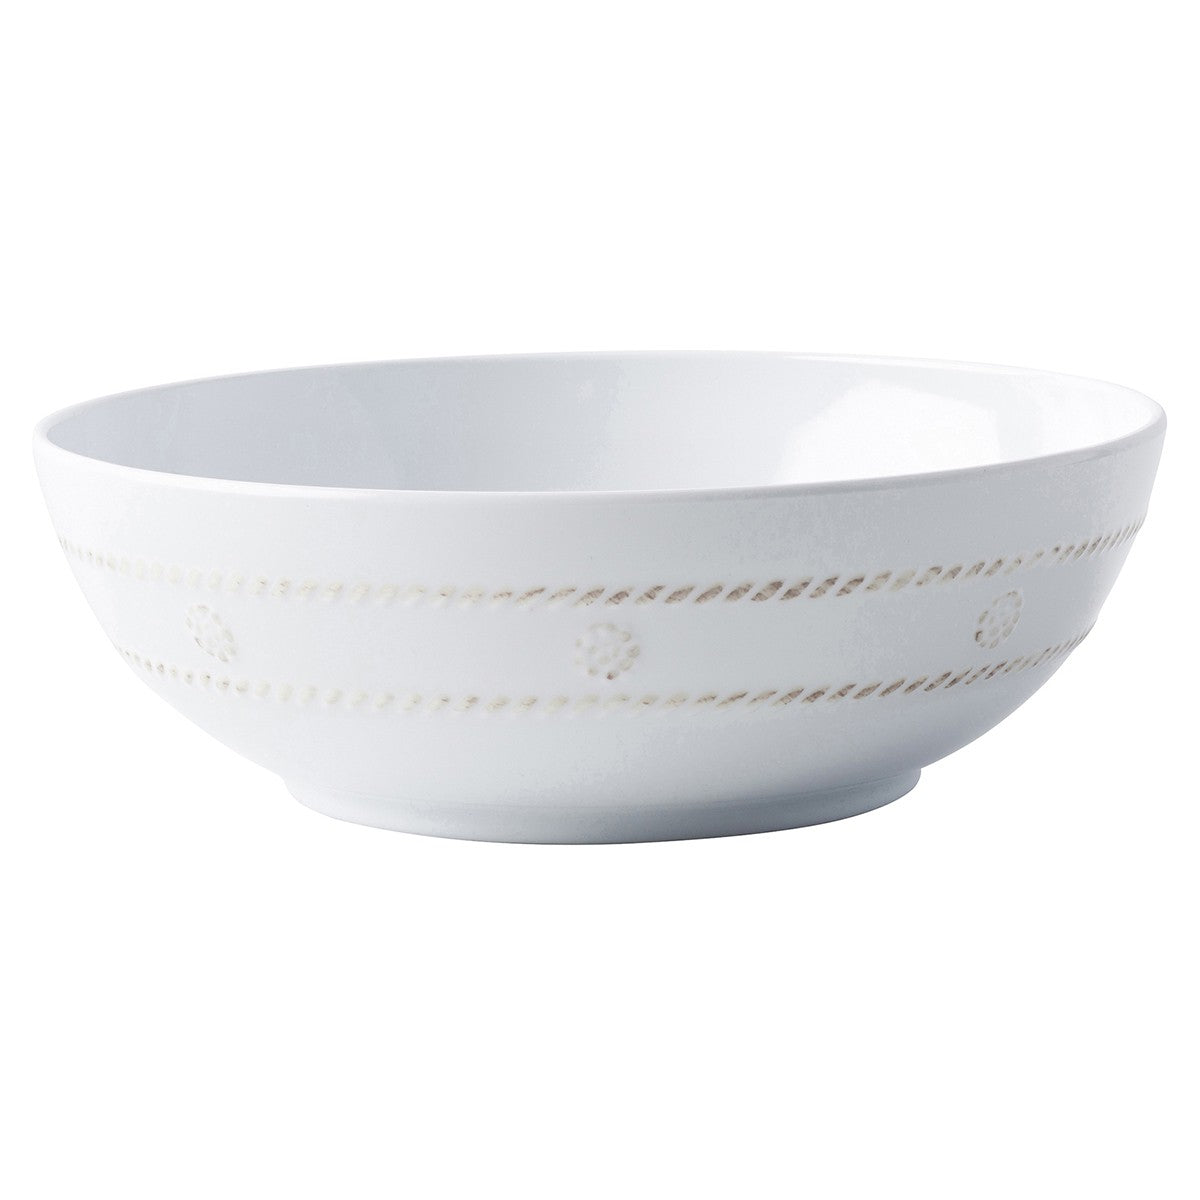 Juliska - Berry & Thread Melamine Whitewash Coupe Bowl